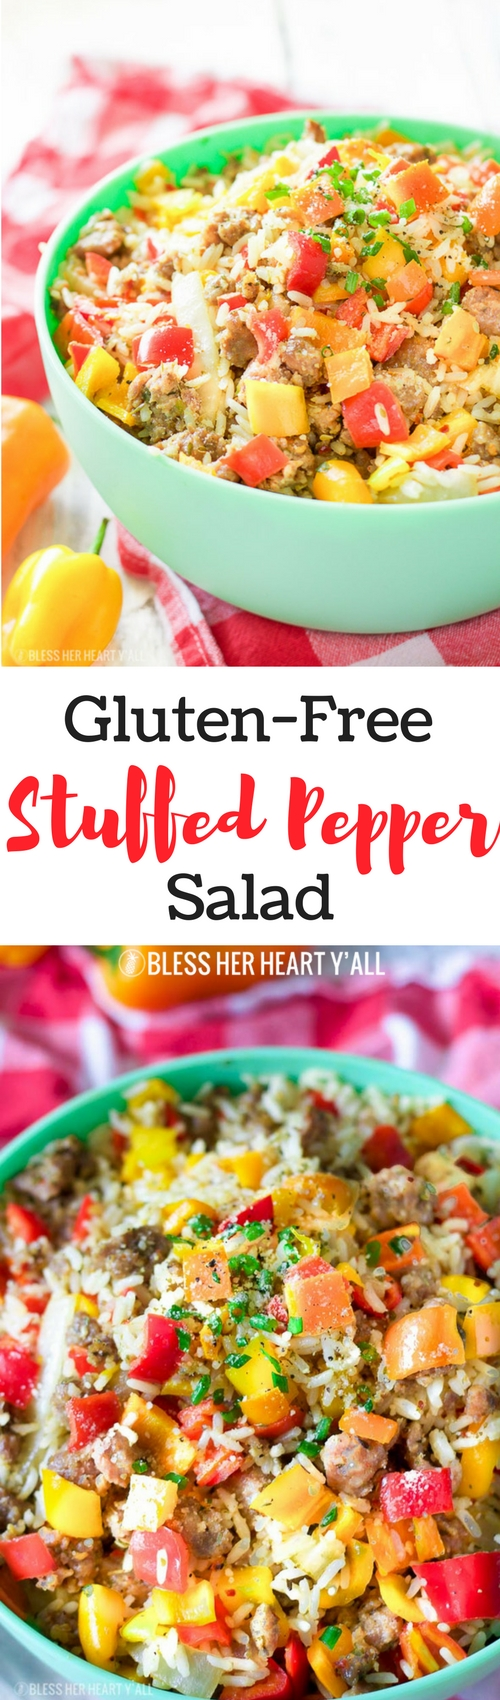 This gluten-free chopped stuffed pepper salad combines spicy sausage with fresh diced bell peppers and sweet onion, fluffy rice, and is seasoned with a combination of sizzling creole spices for one salad that is burst with flavor spoonful after spoonful!